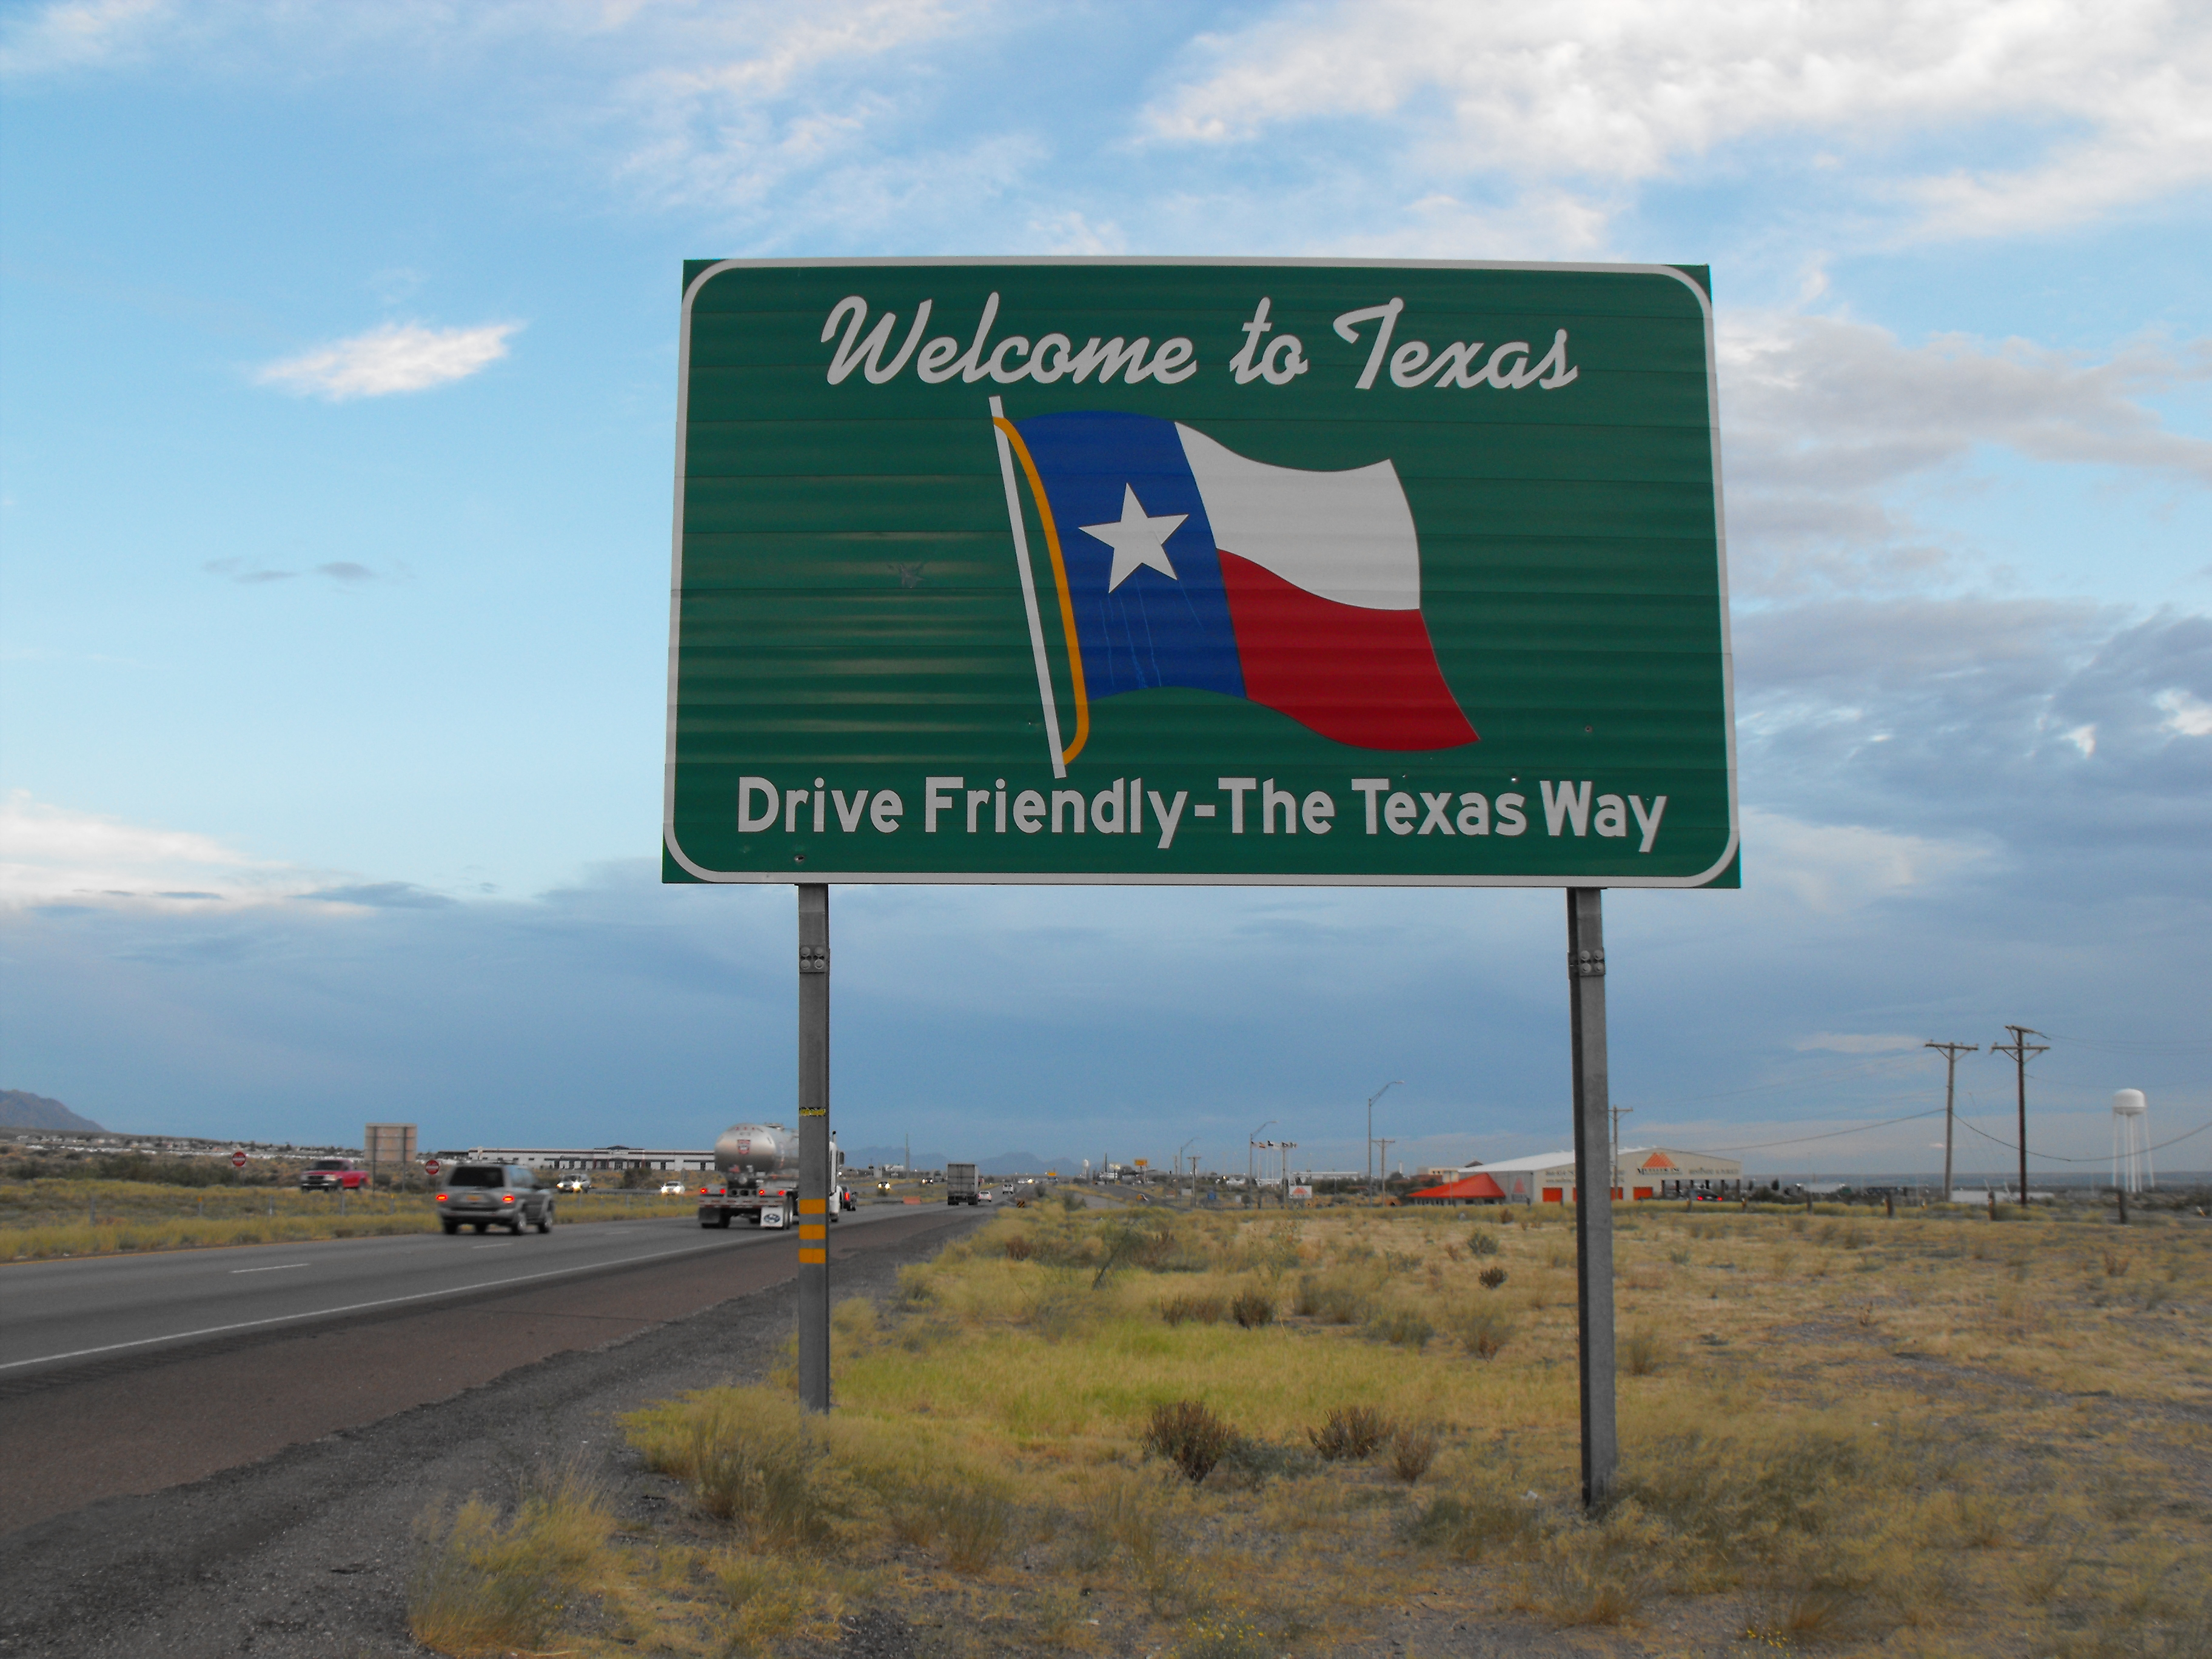 state map of tx with 3823264091 on 3823264091 moreover Hotel Map furthermore Alive Kl besides Austin Texas in addition S F A Panola Day.